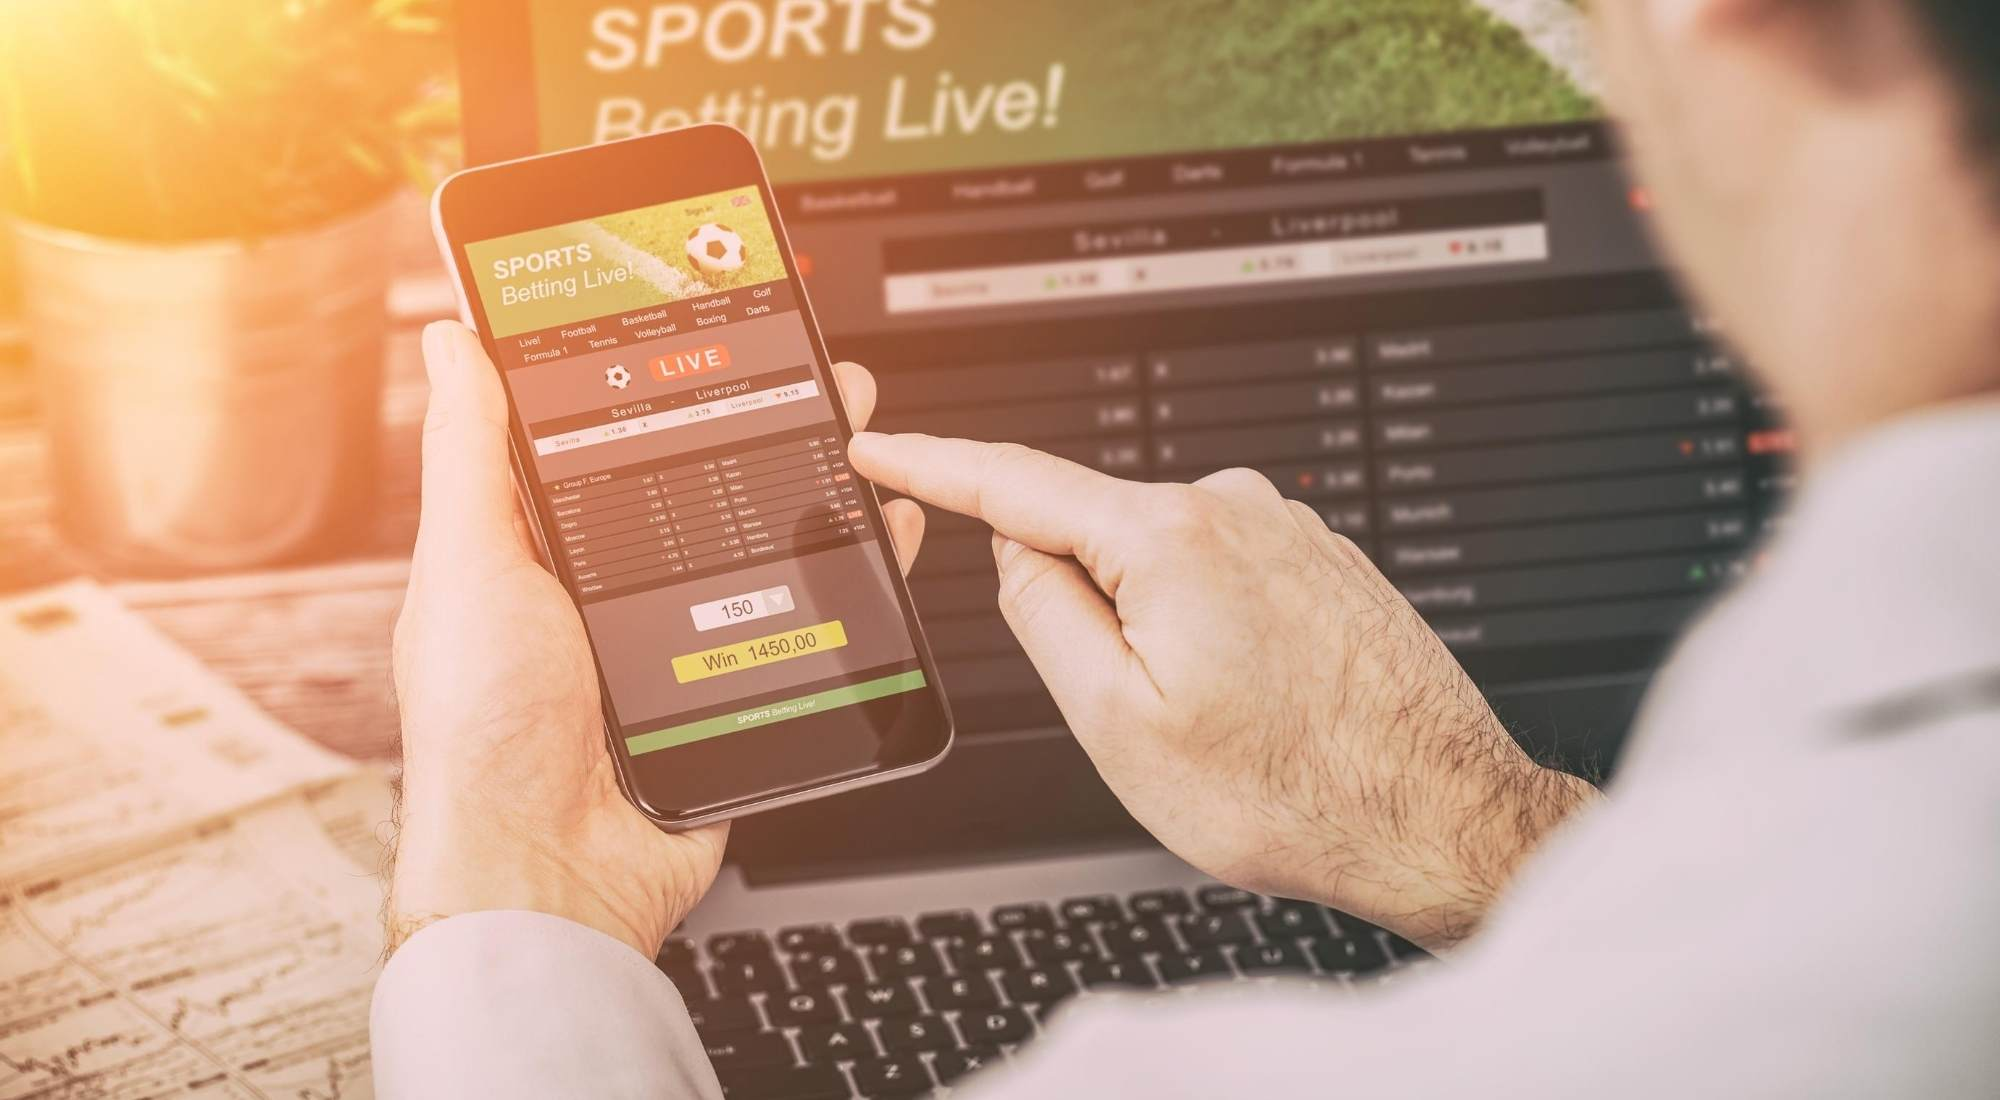 Match safe for betting online cover point sports betting